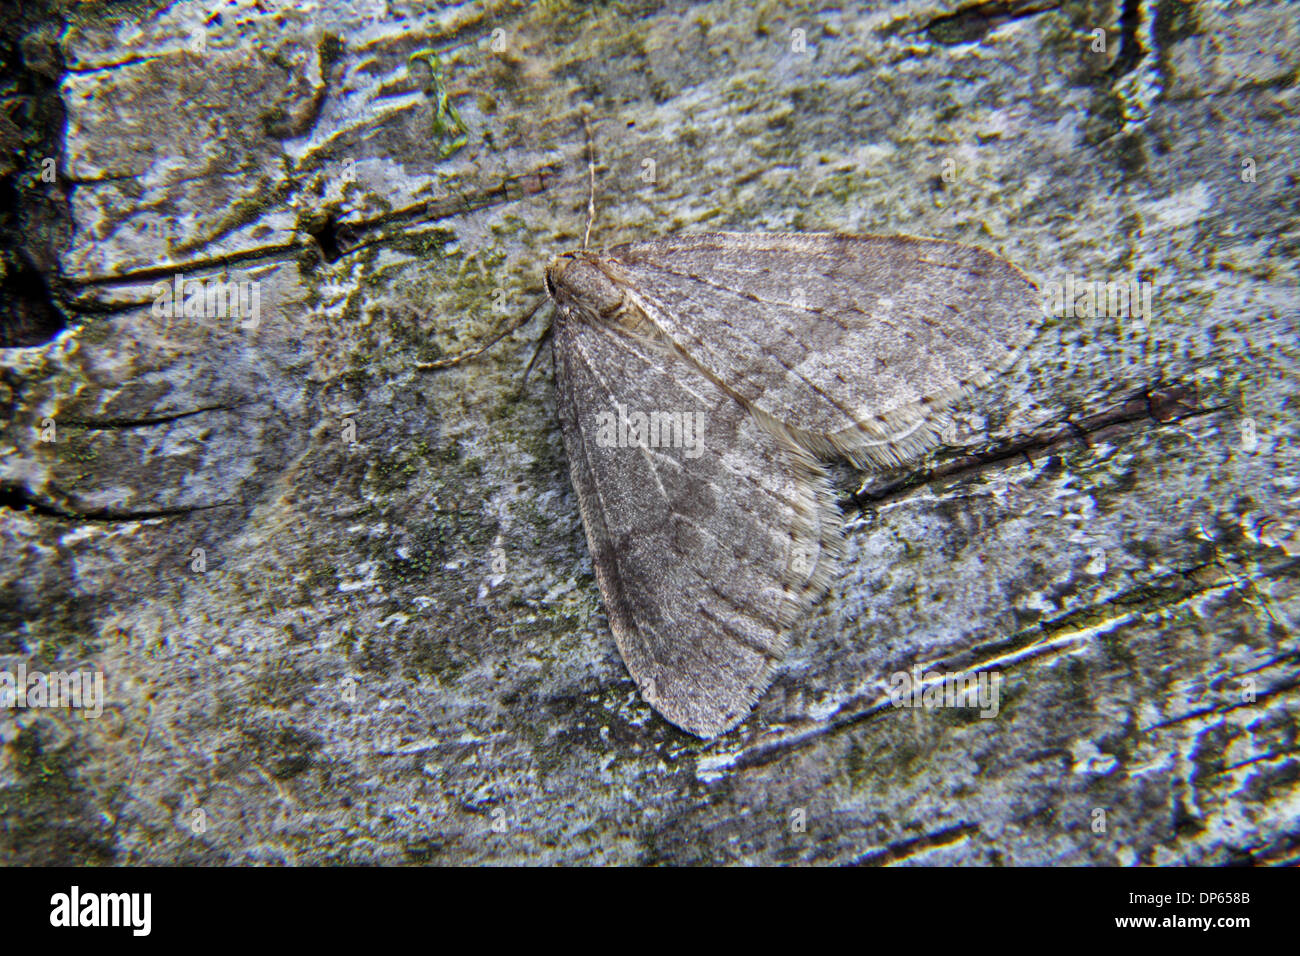 Northern winter moth at rest - Stock Image